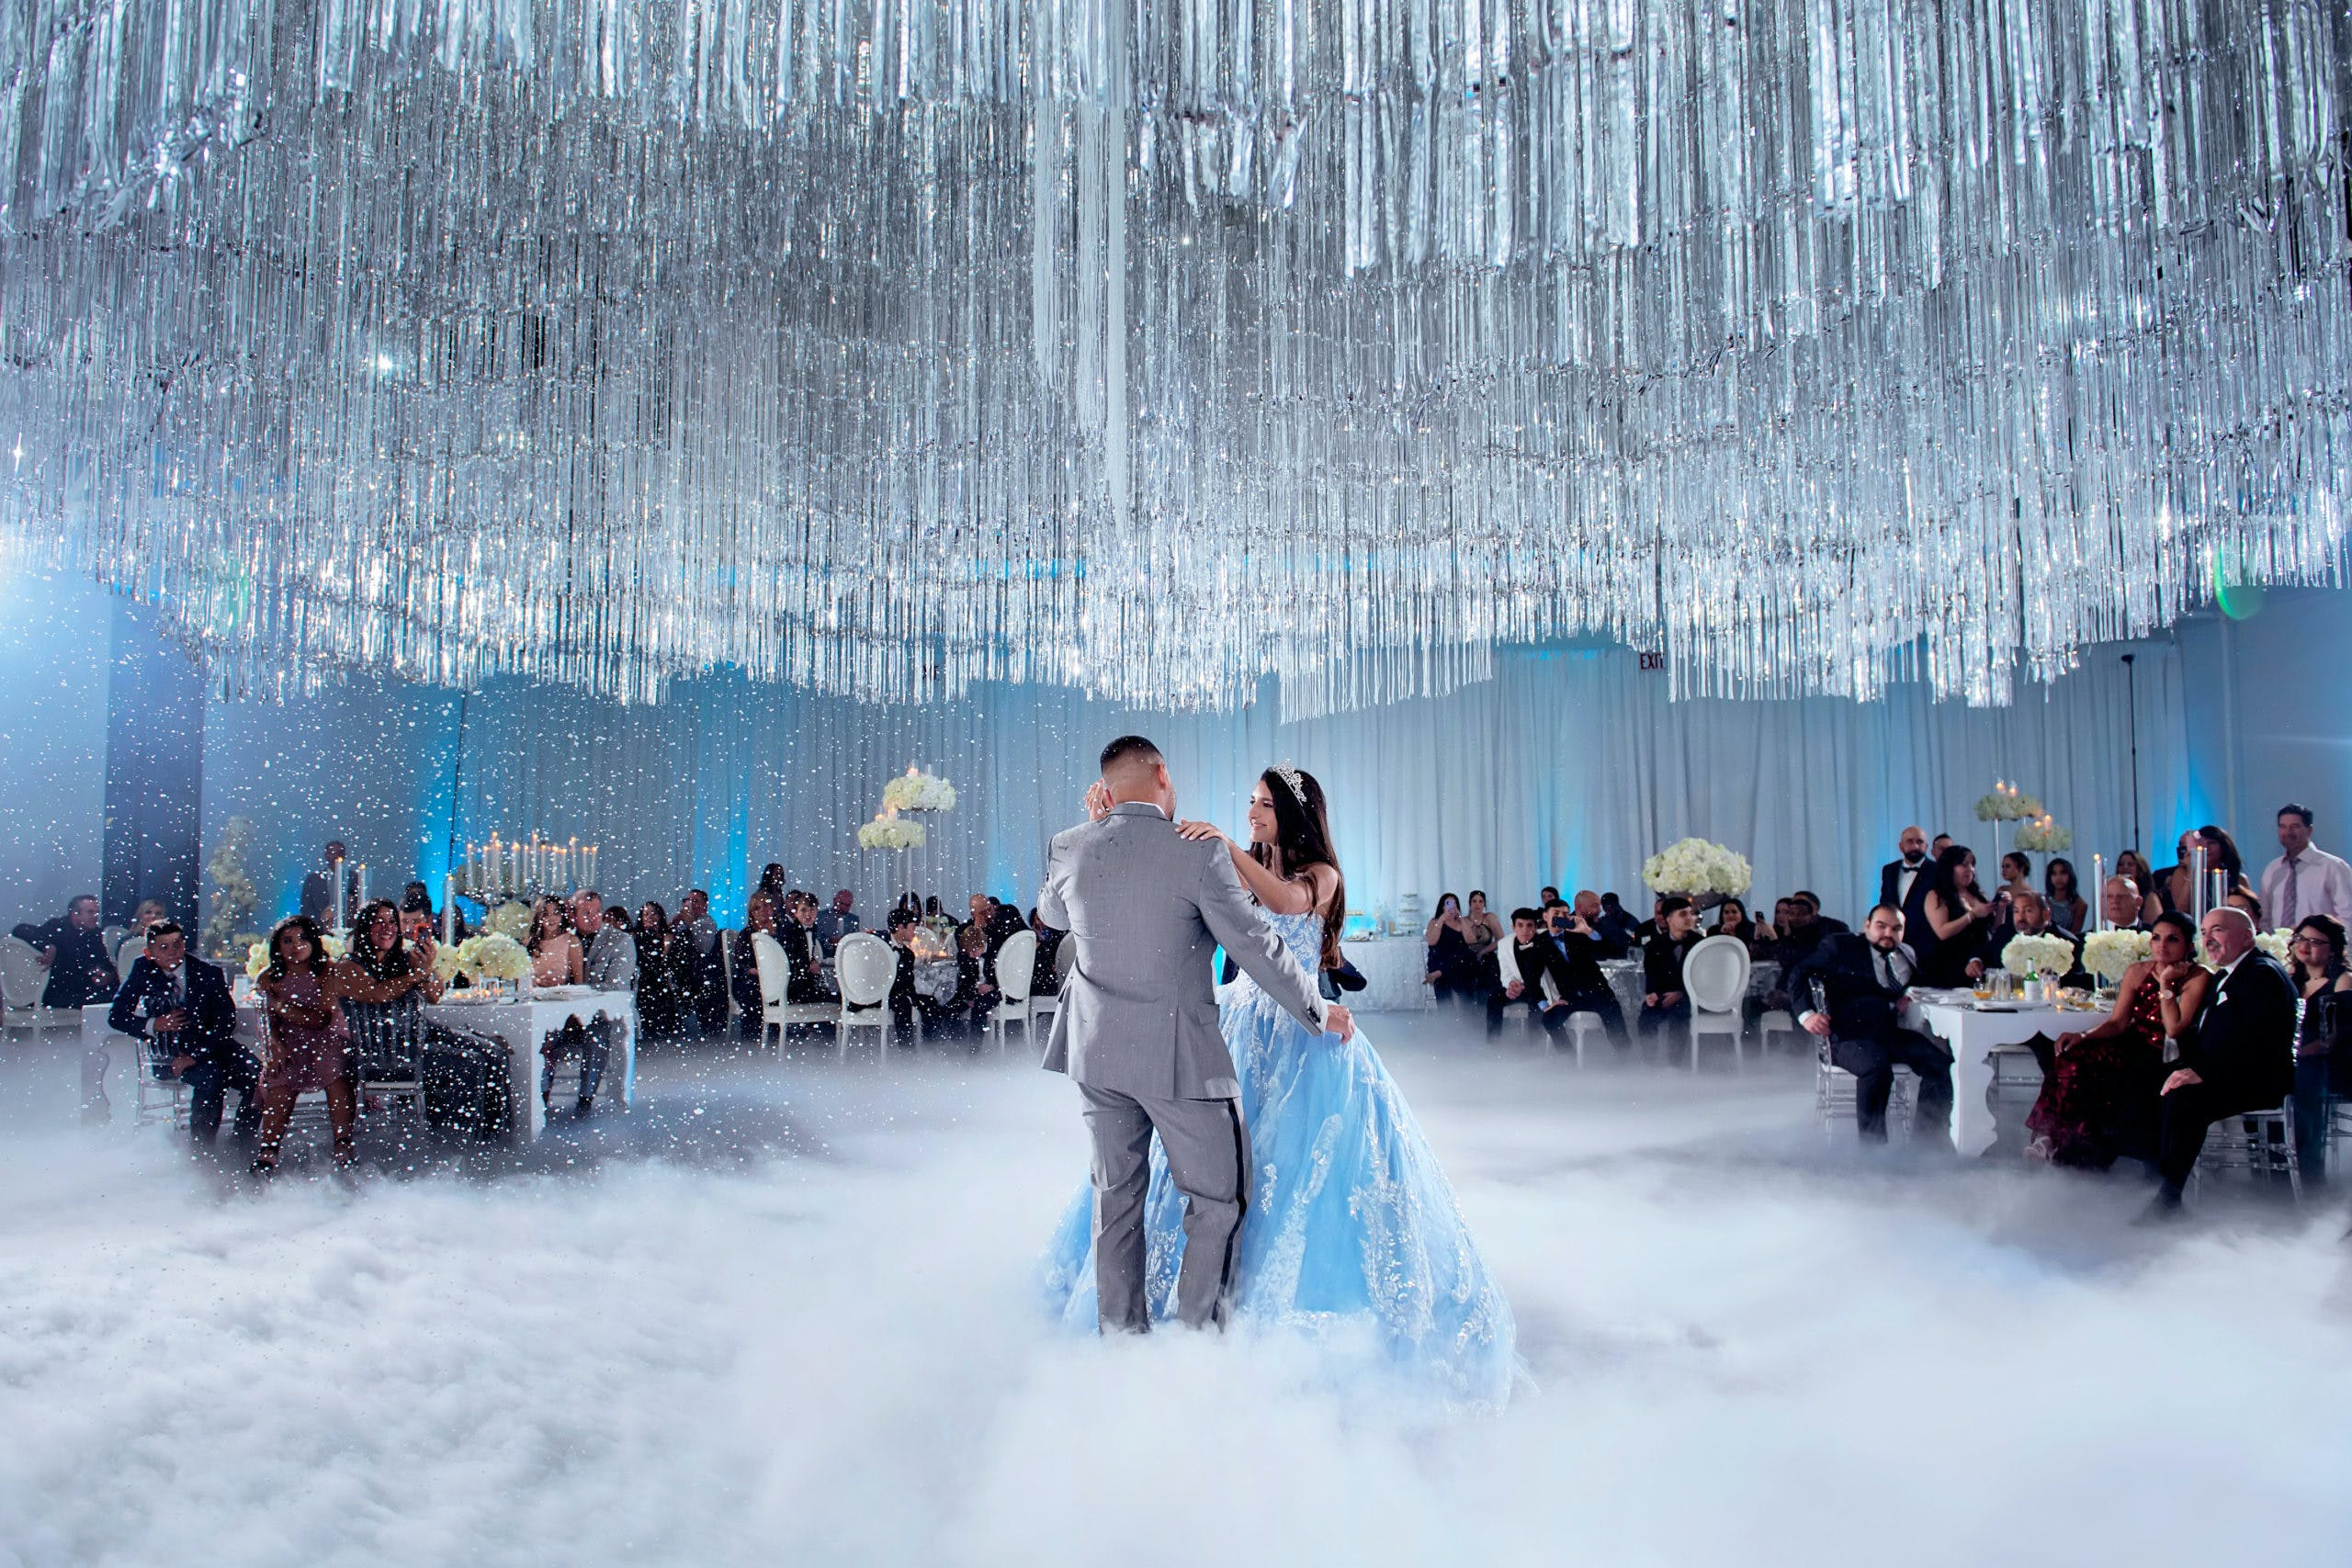 Father and Daughter Dance Through Fog Underneath Crystal Ceiling Installation at Winter Wonderland-Themed Quinceañera | PartySlate